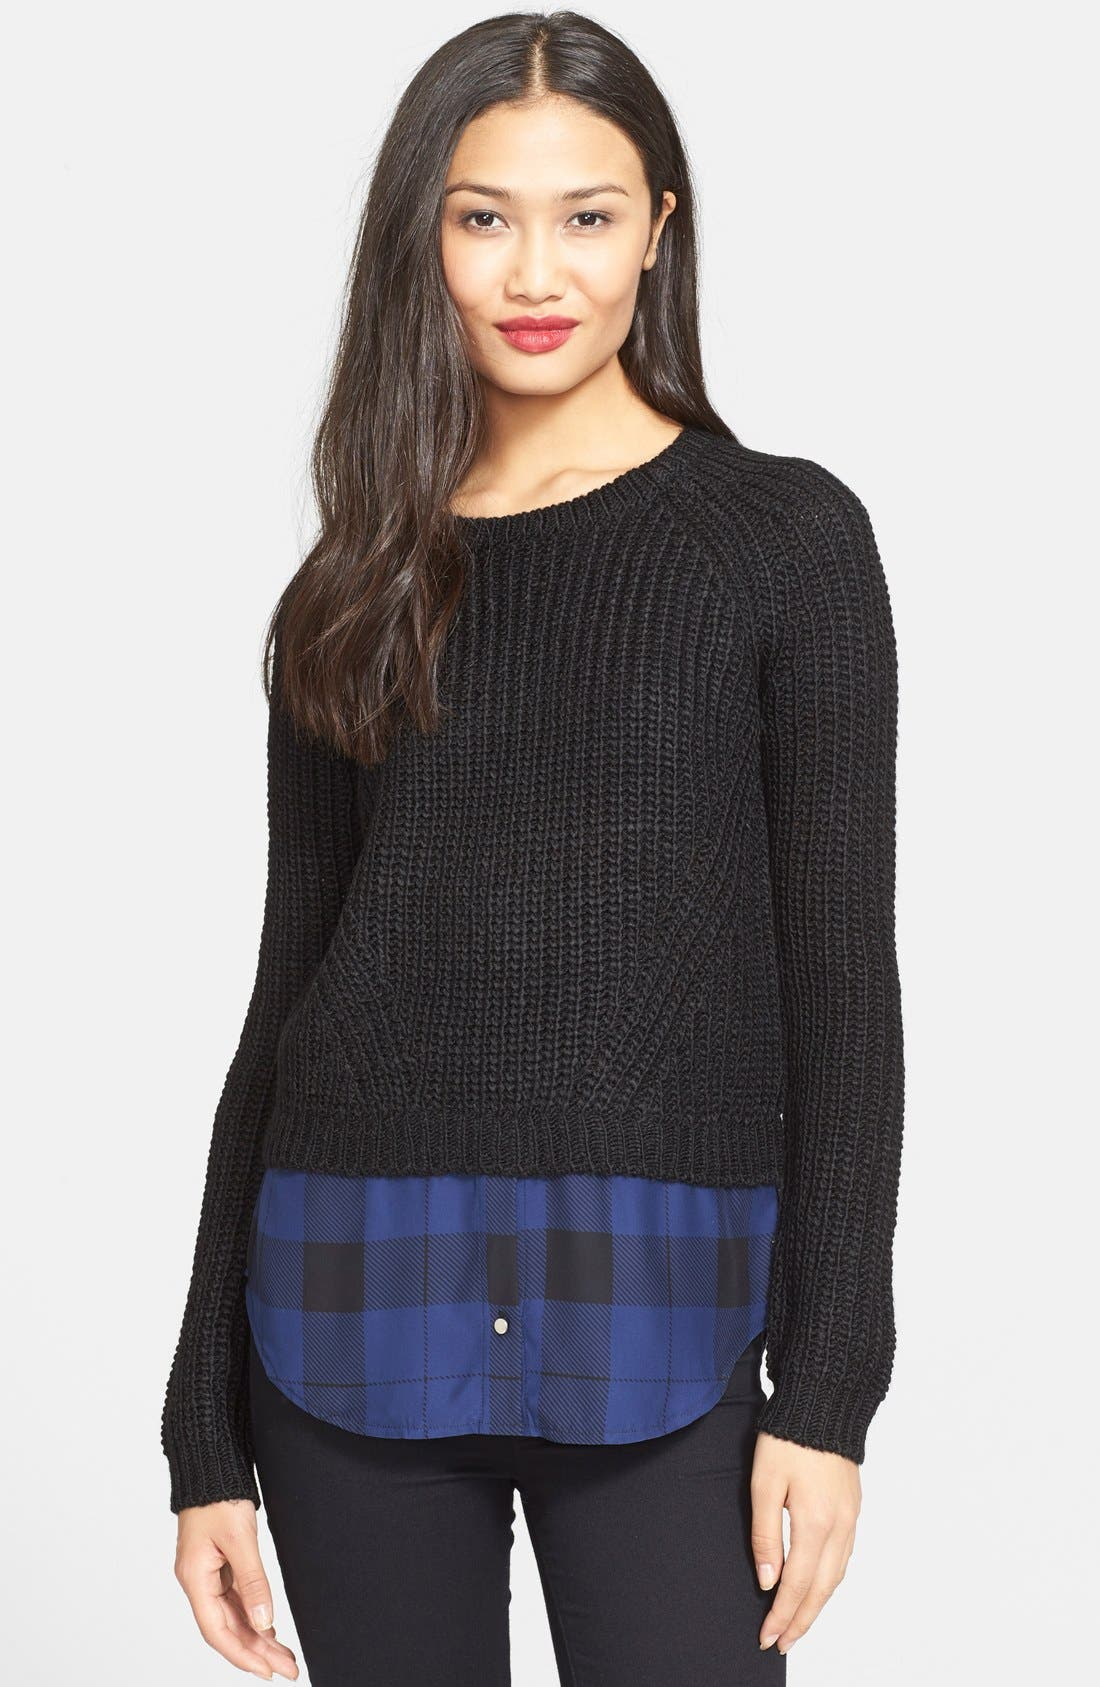 Alternate Image 1 Selected - Parker 'Wendy' Layered Look Sweater